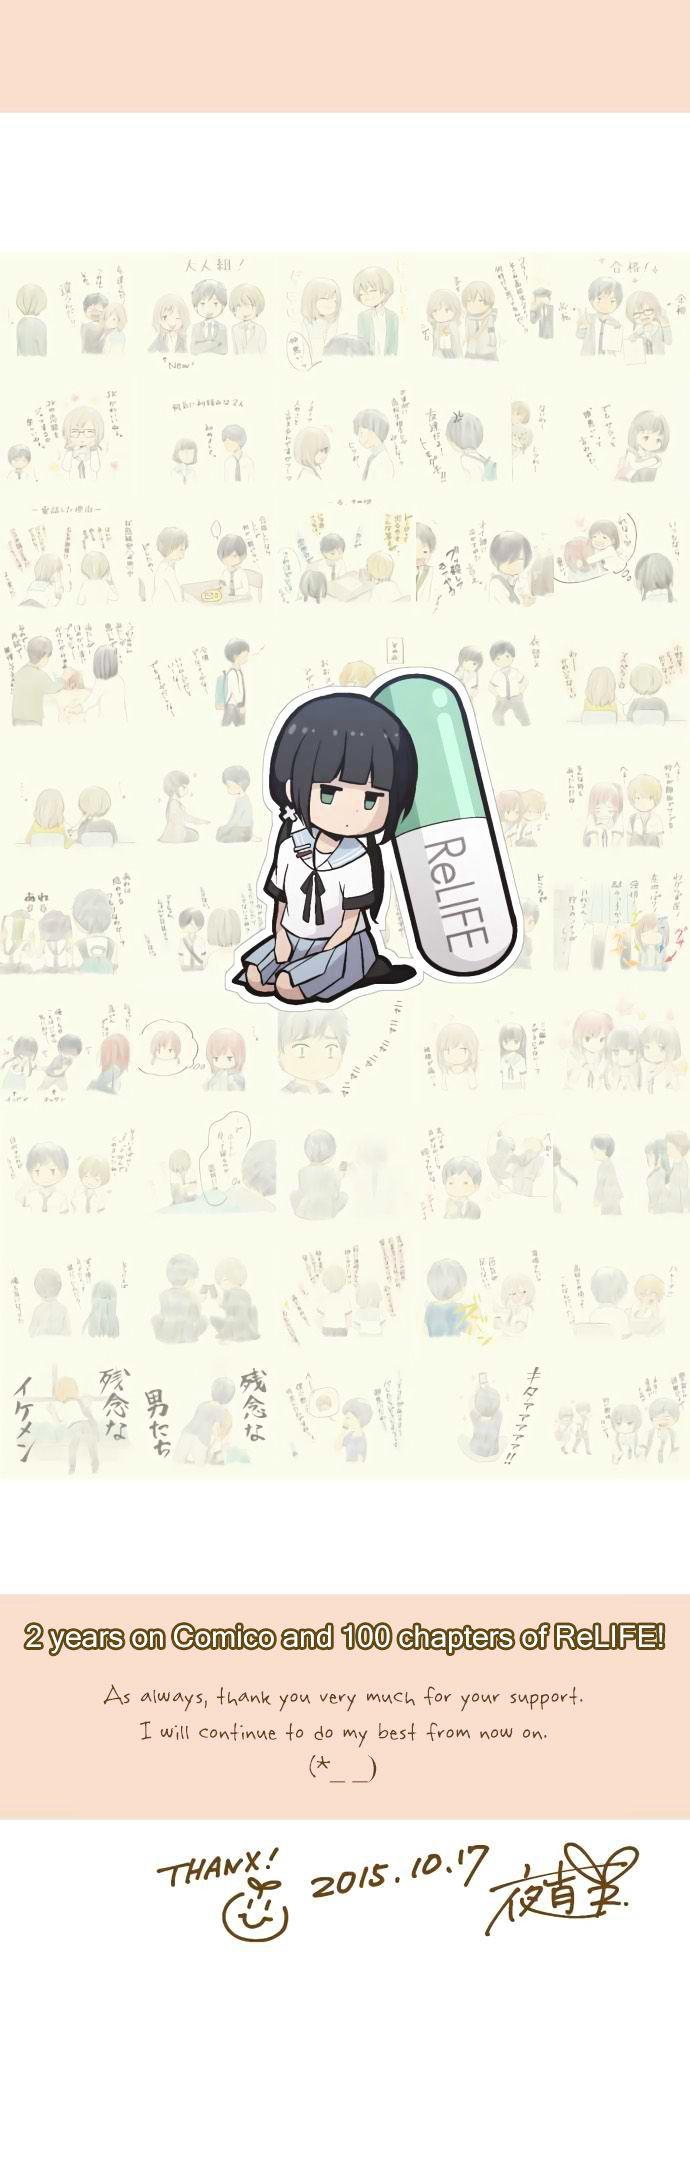 ReLIFE 100 - Read ReLIFE ch.100 Online For Free - Stream 5 Edition 1 Page All - MangaPark